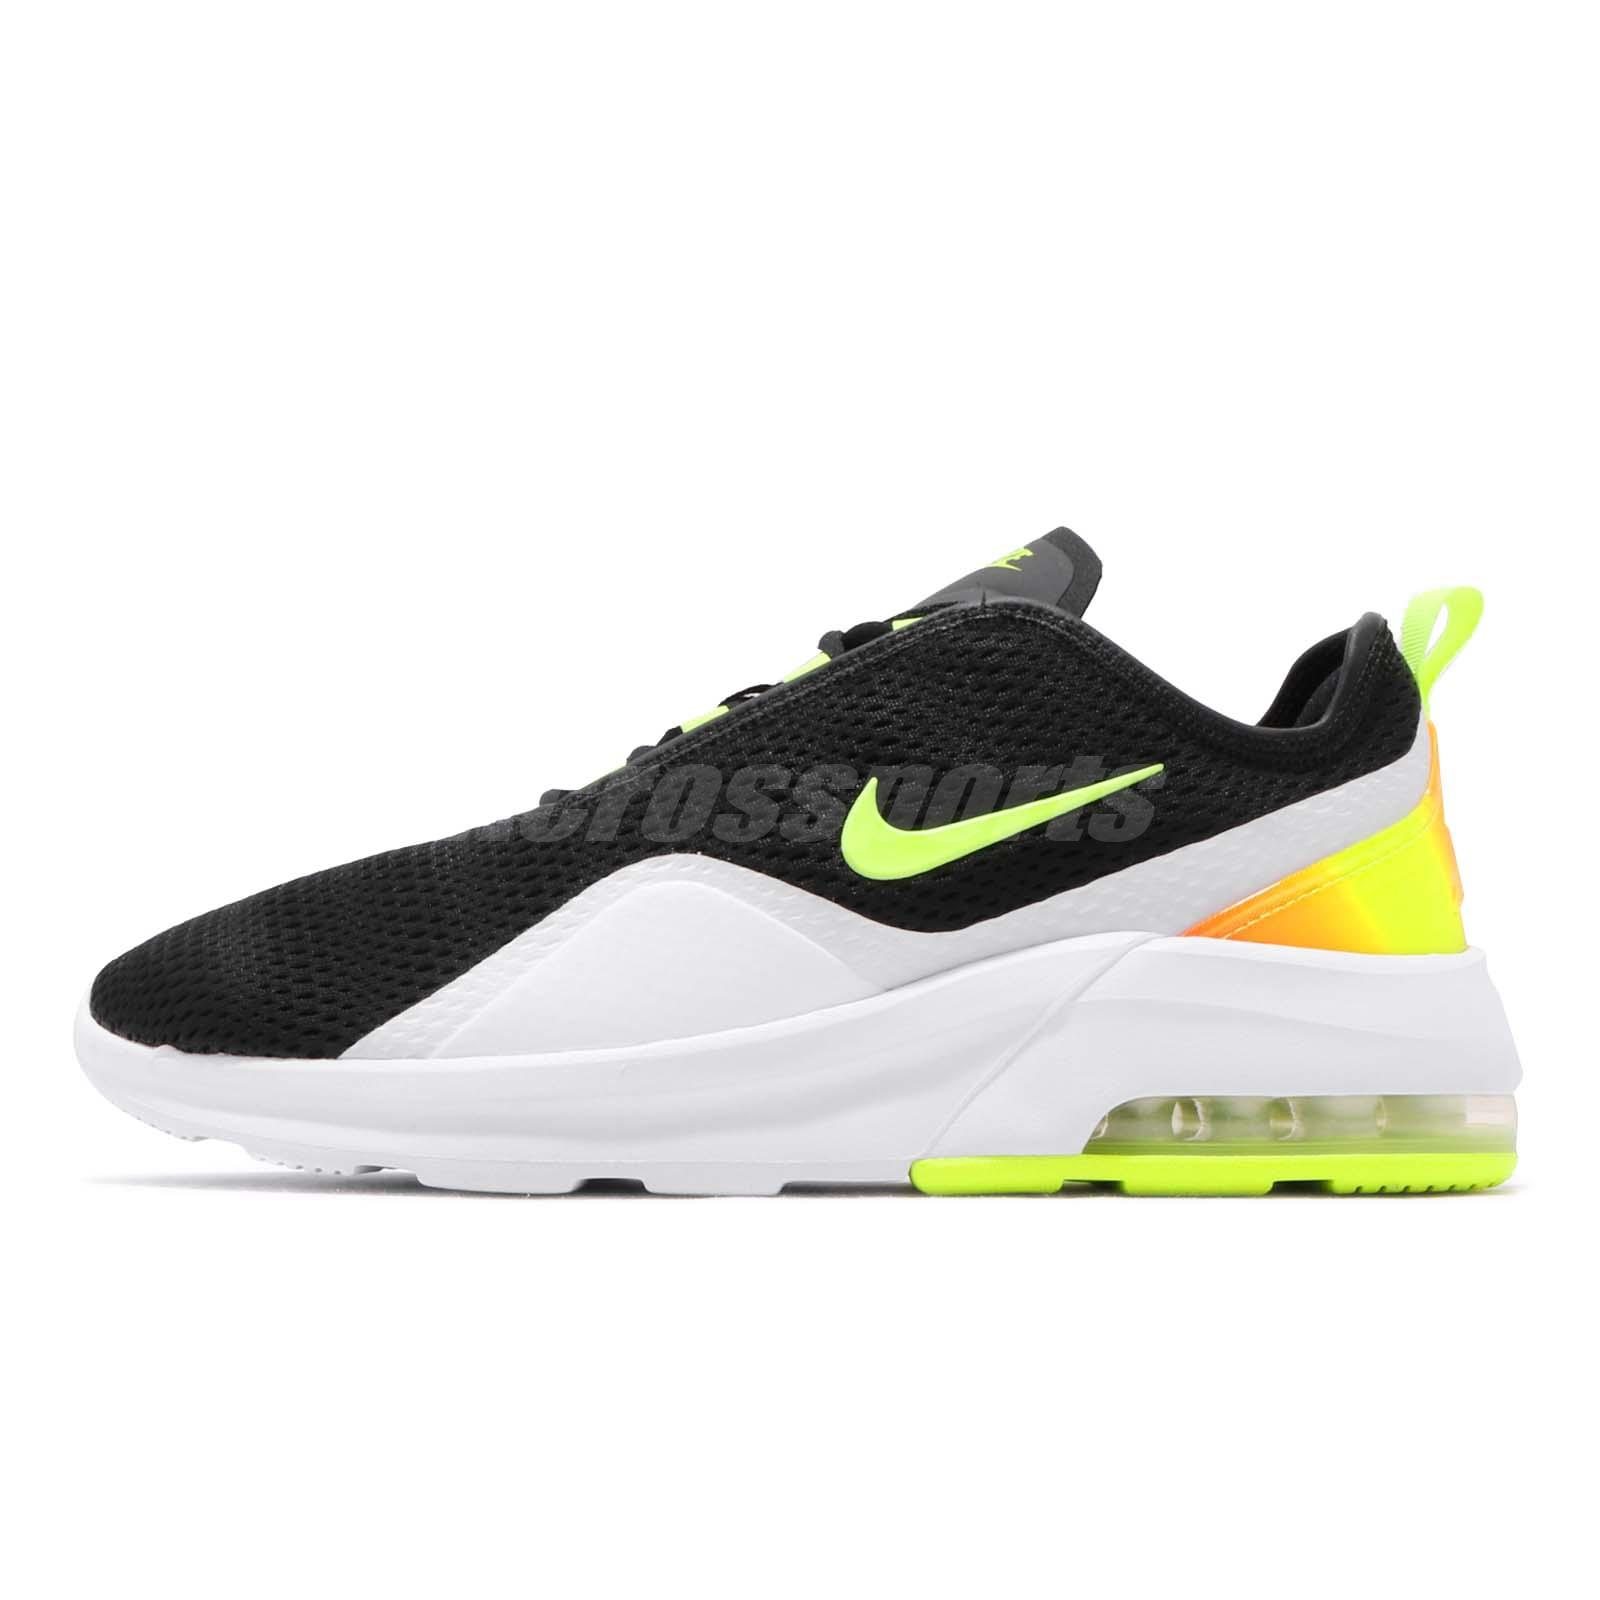 erección Hollywood tapa  Nike Air Max Motion 2 Black Volt White Men Running Shoes Sneakers  AO0266-007 | eBay